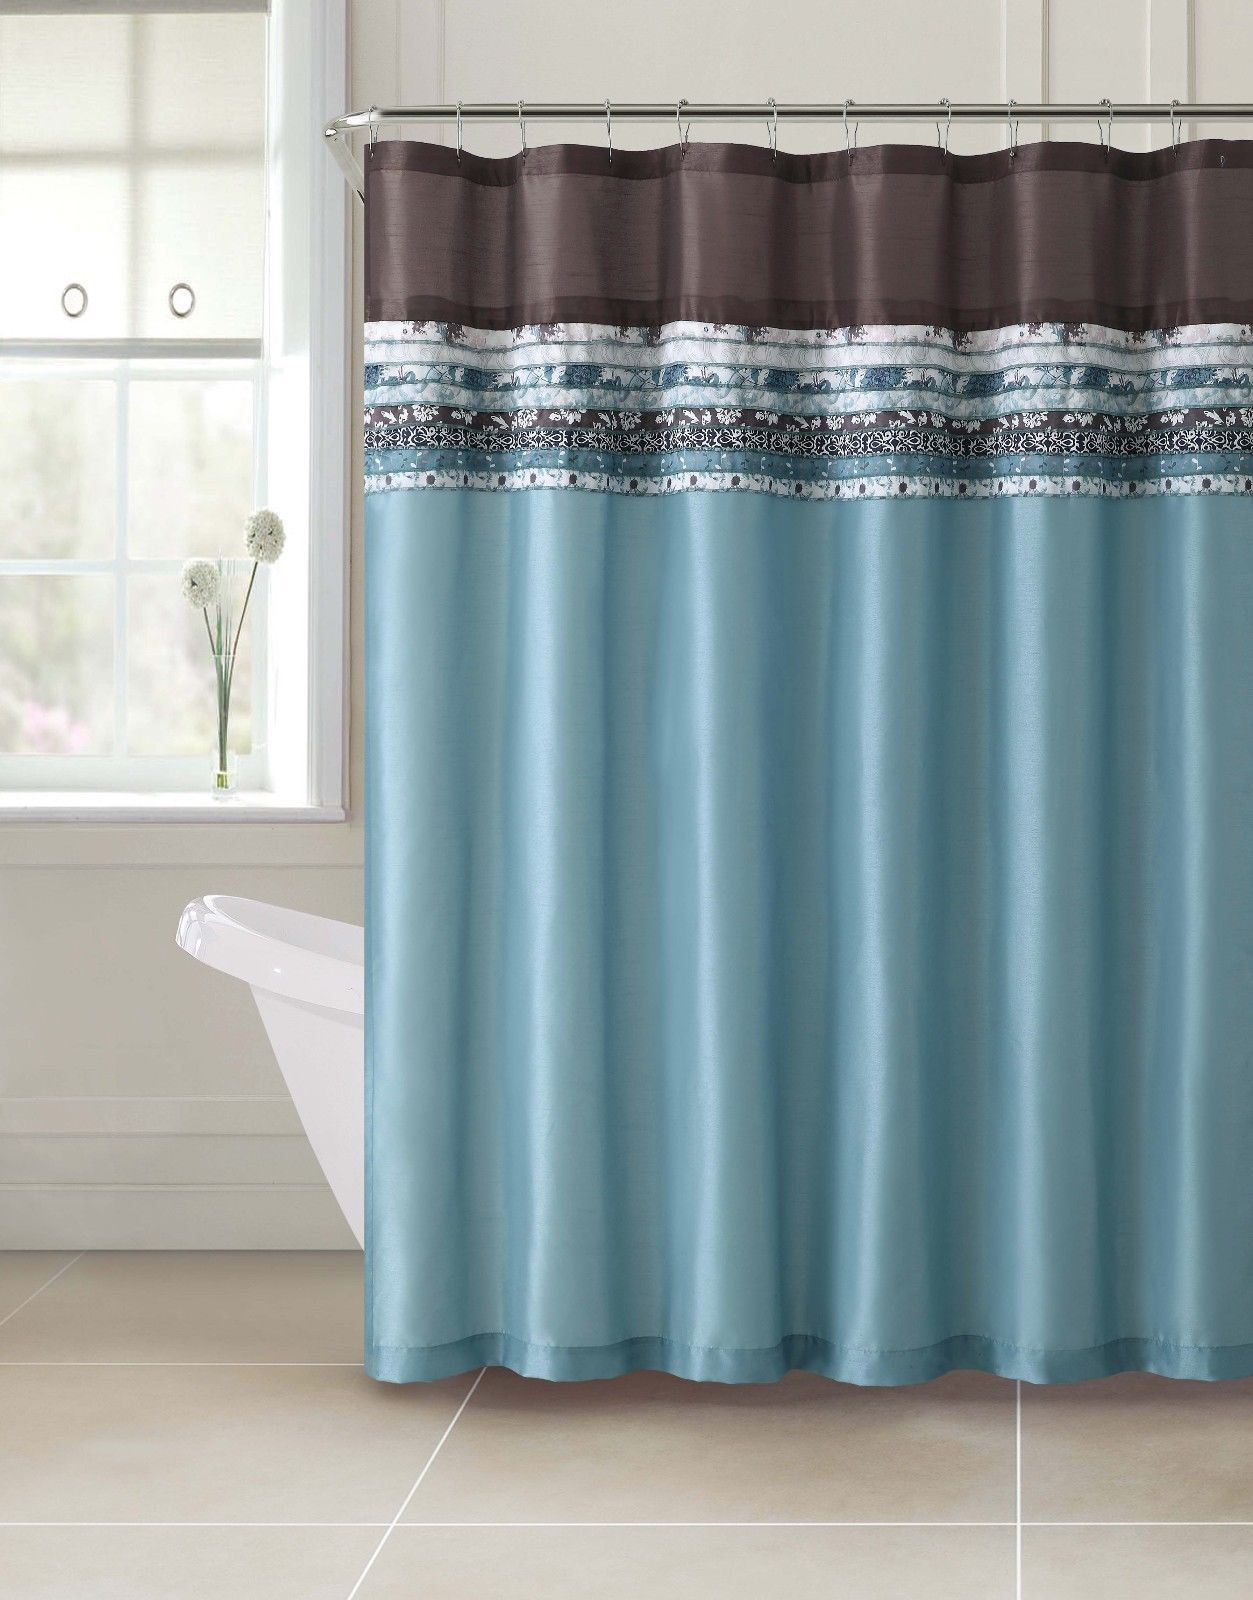 Poetica Faux Silk Aqua Blue Teal Brown Turquoise Fabric Bathroom Shower Curtain